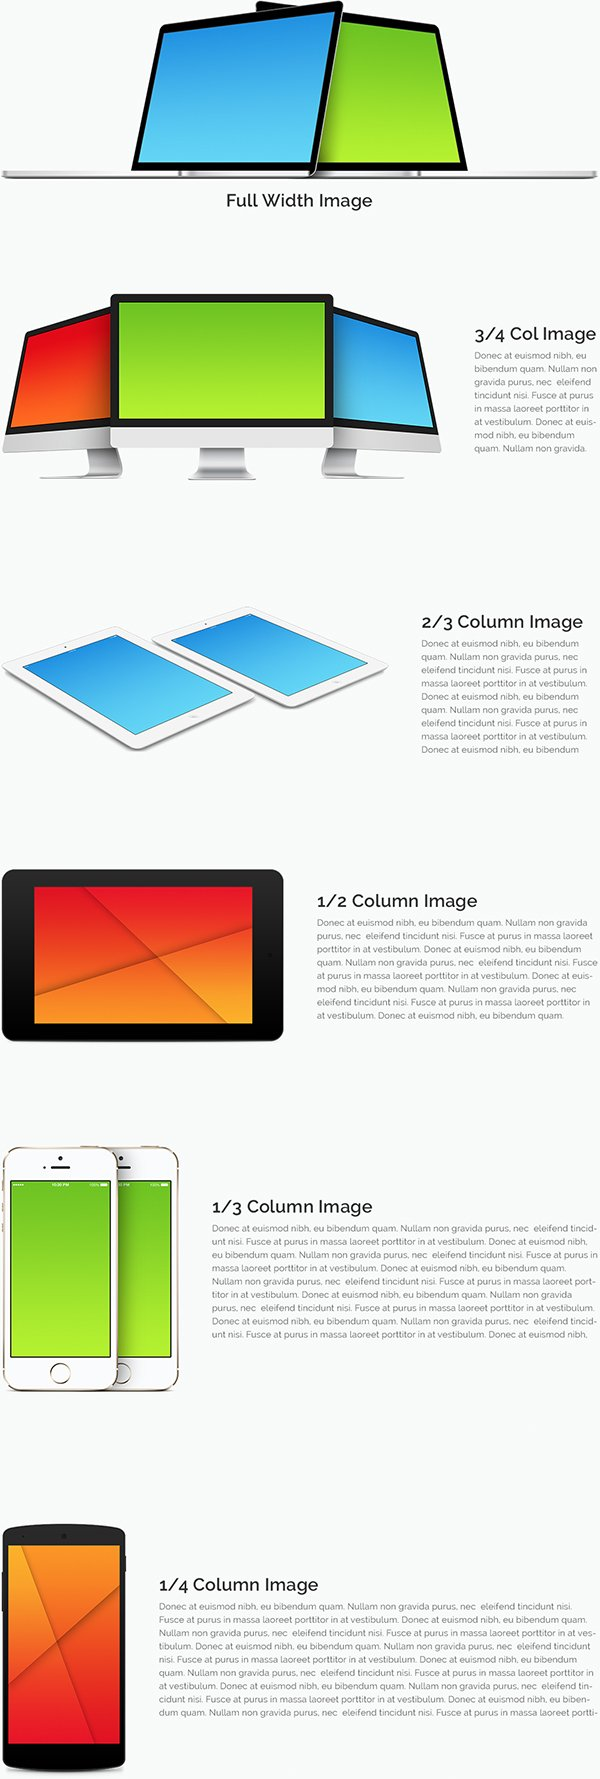 divi-images-examples